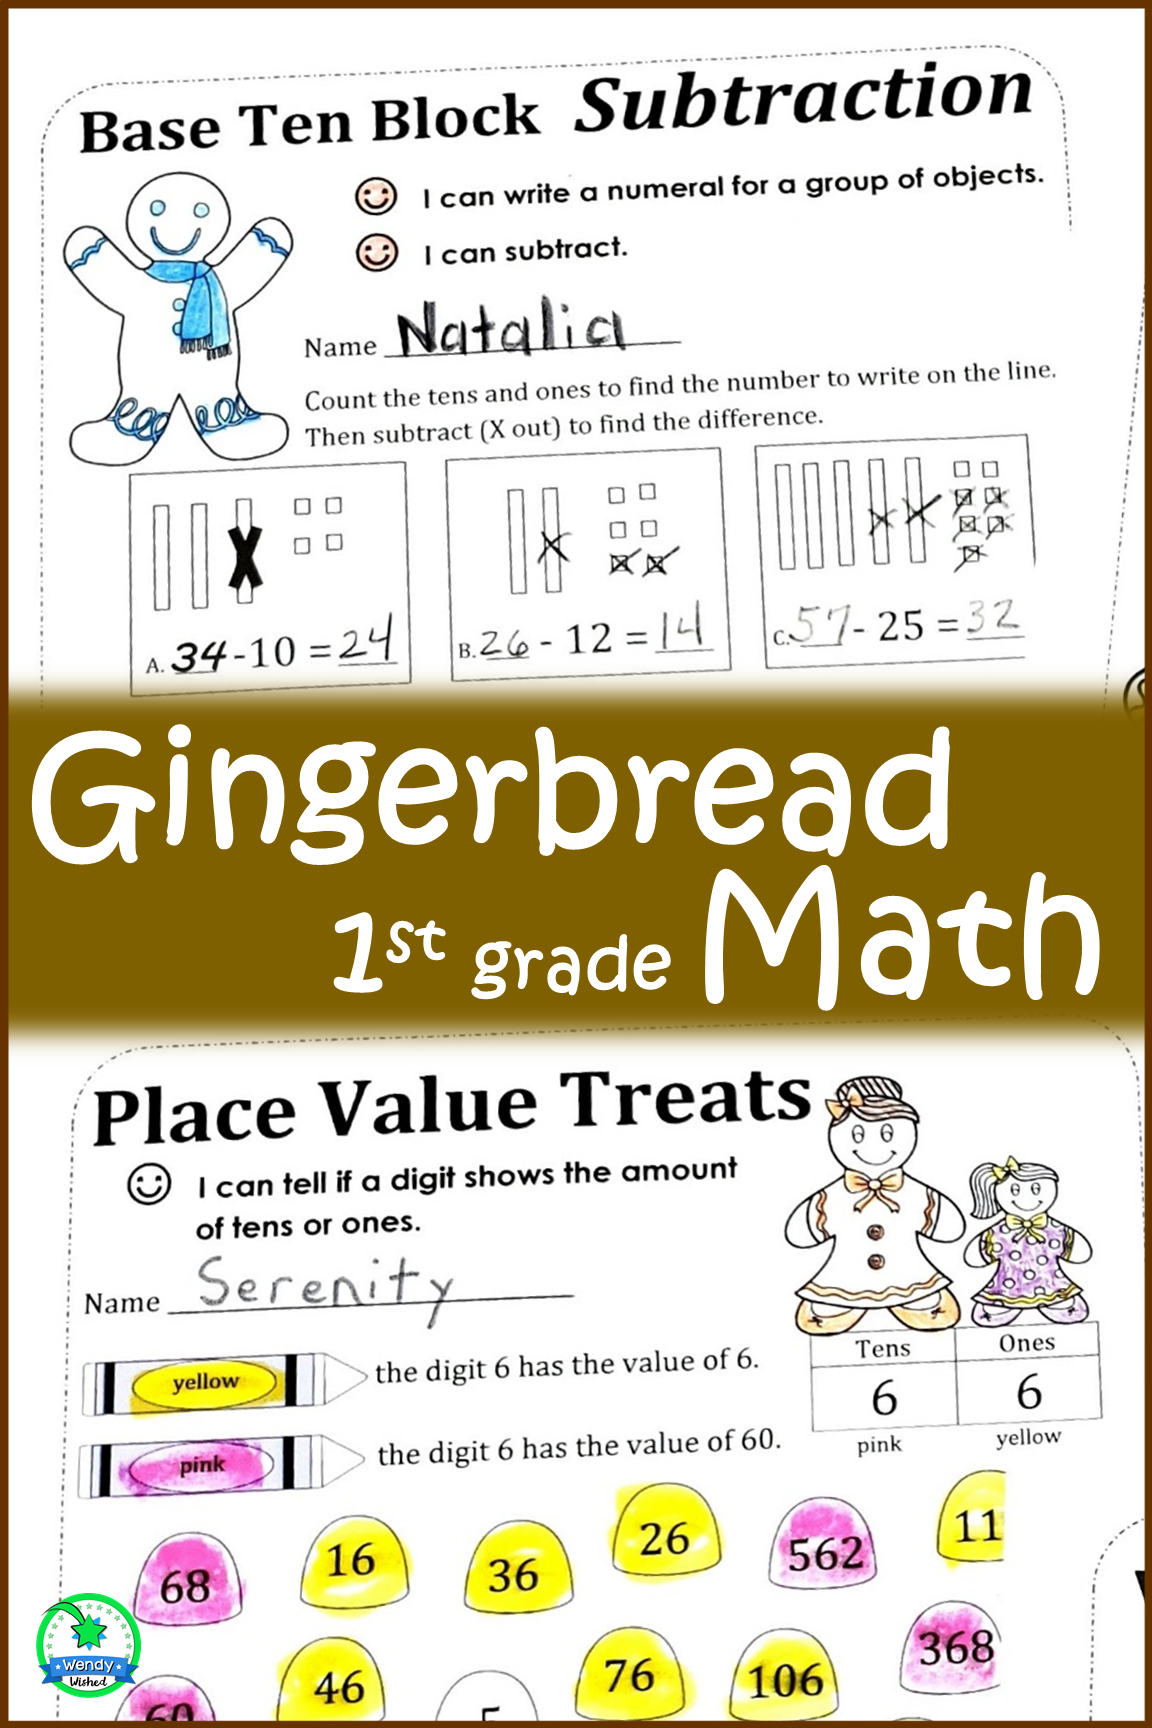 Gingerbread Man Math Worksheet Activities For First Grade